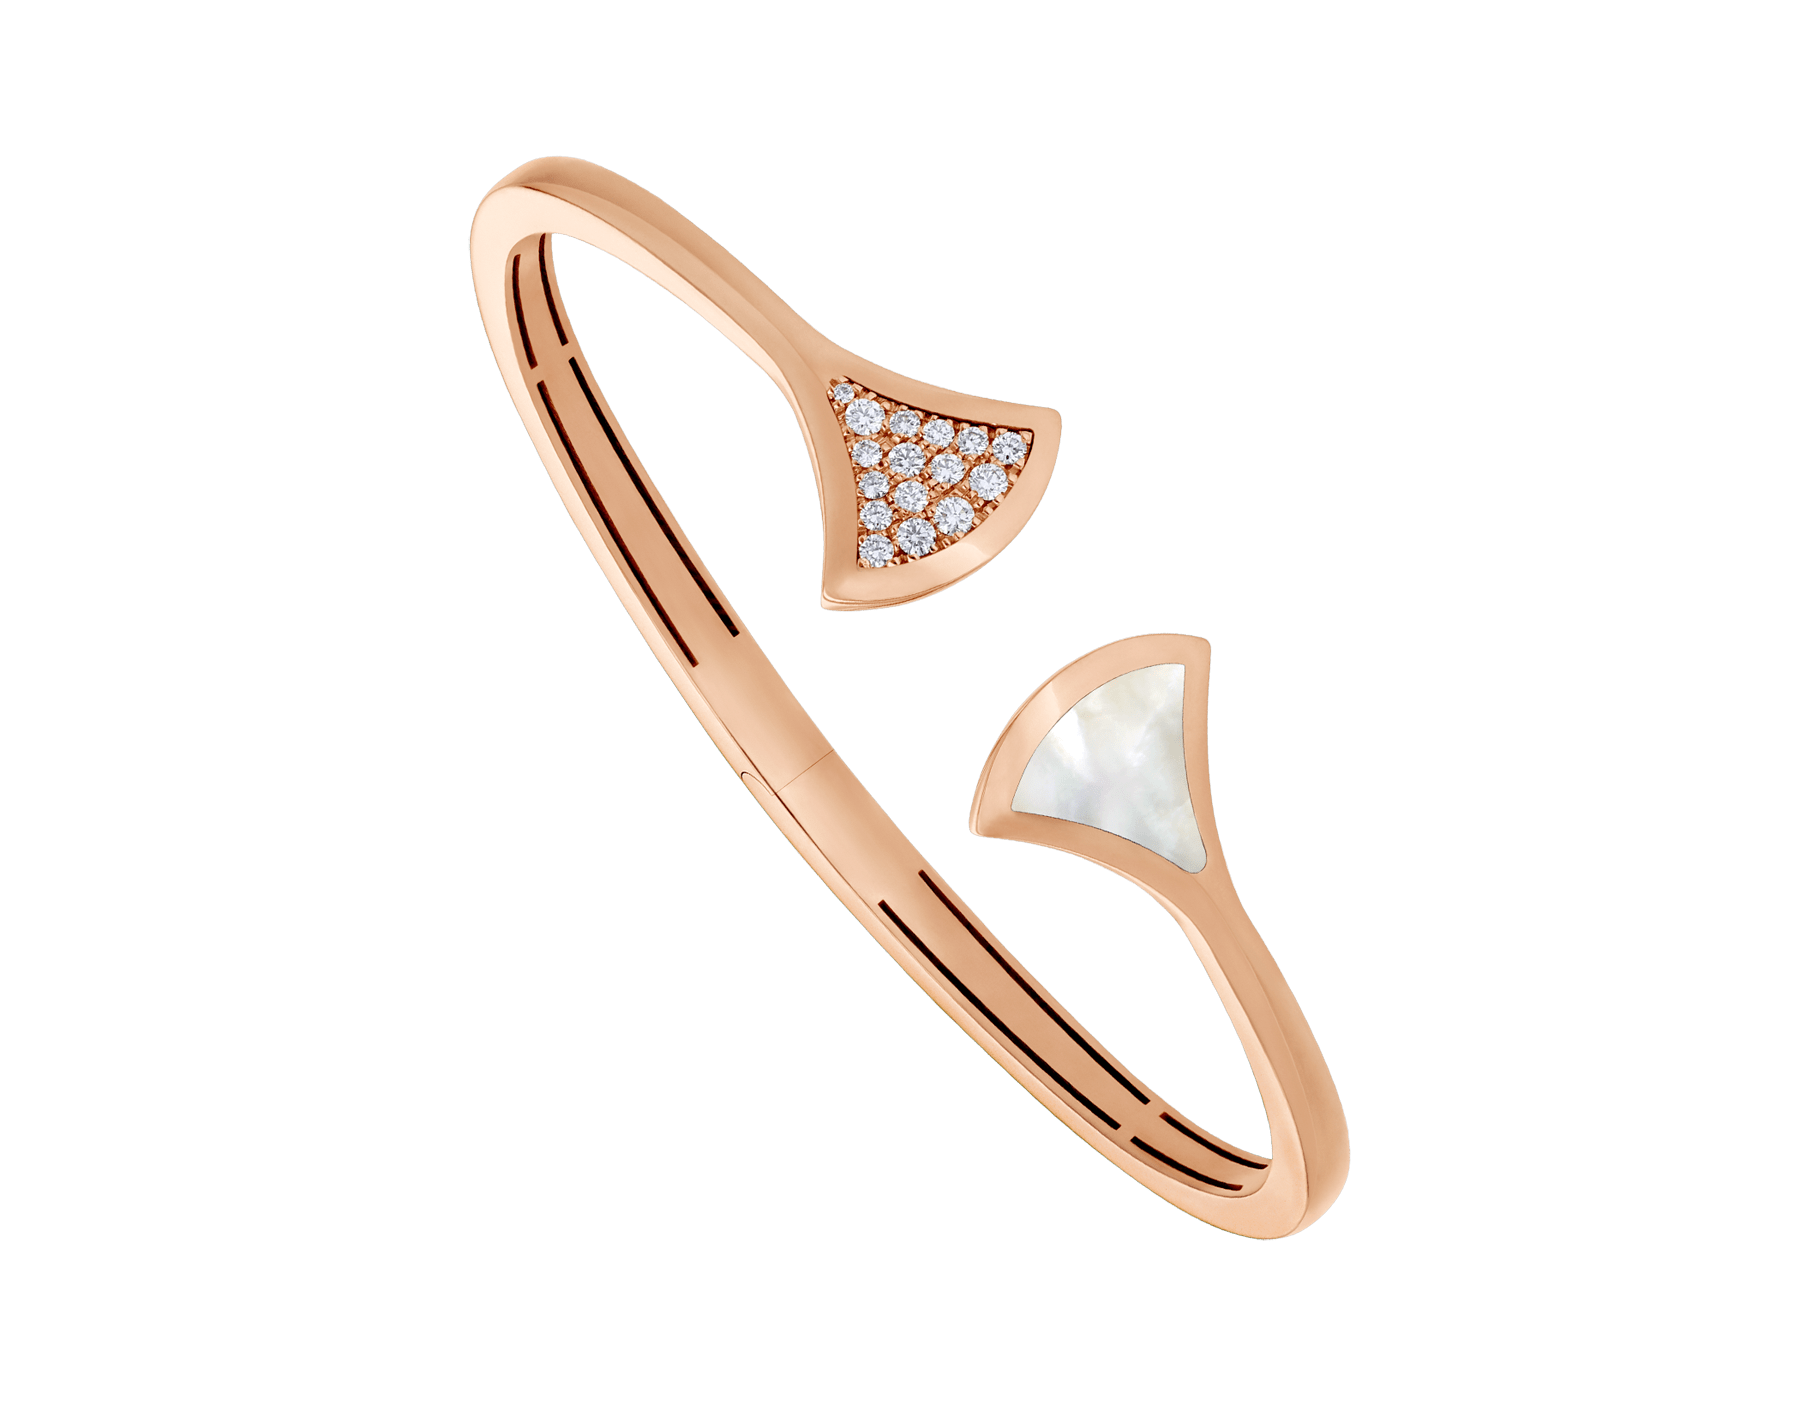 DIVAS' DREAM 18 kt rose gold bangle bracelet set with mother-of-pearl element and pavé diamonds (0.16 ct) BR858680 image 1